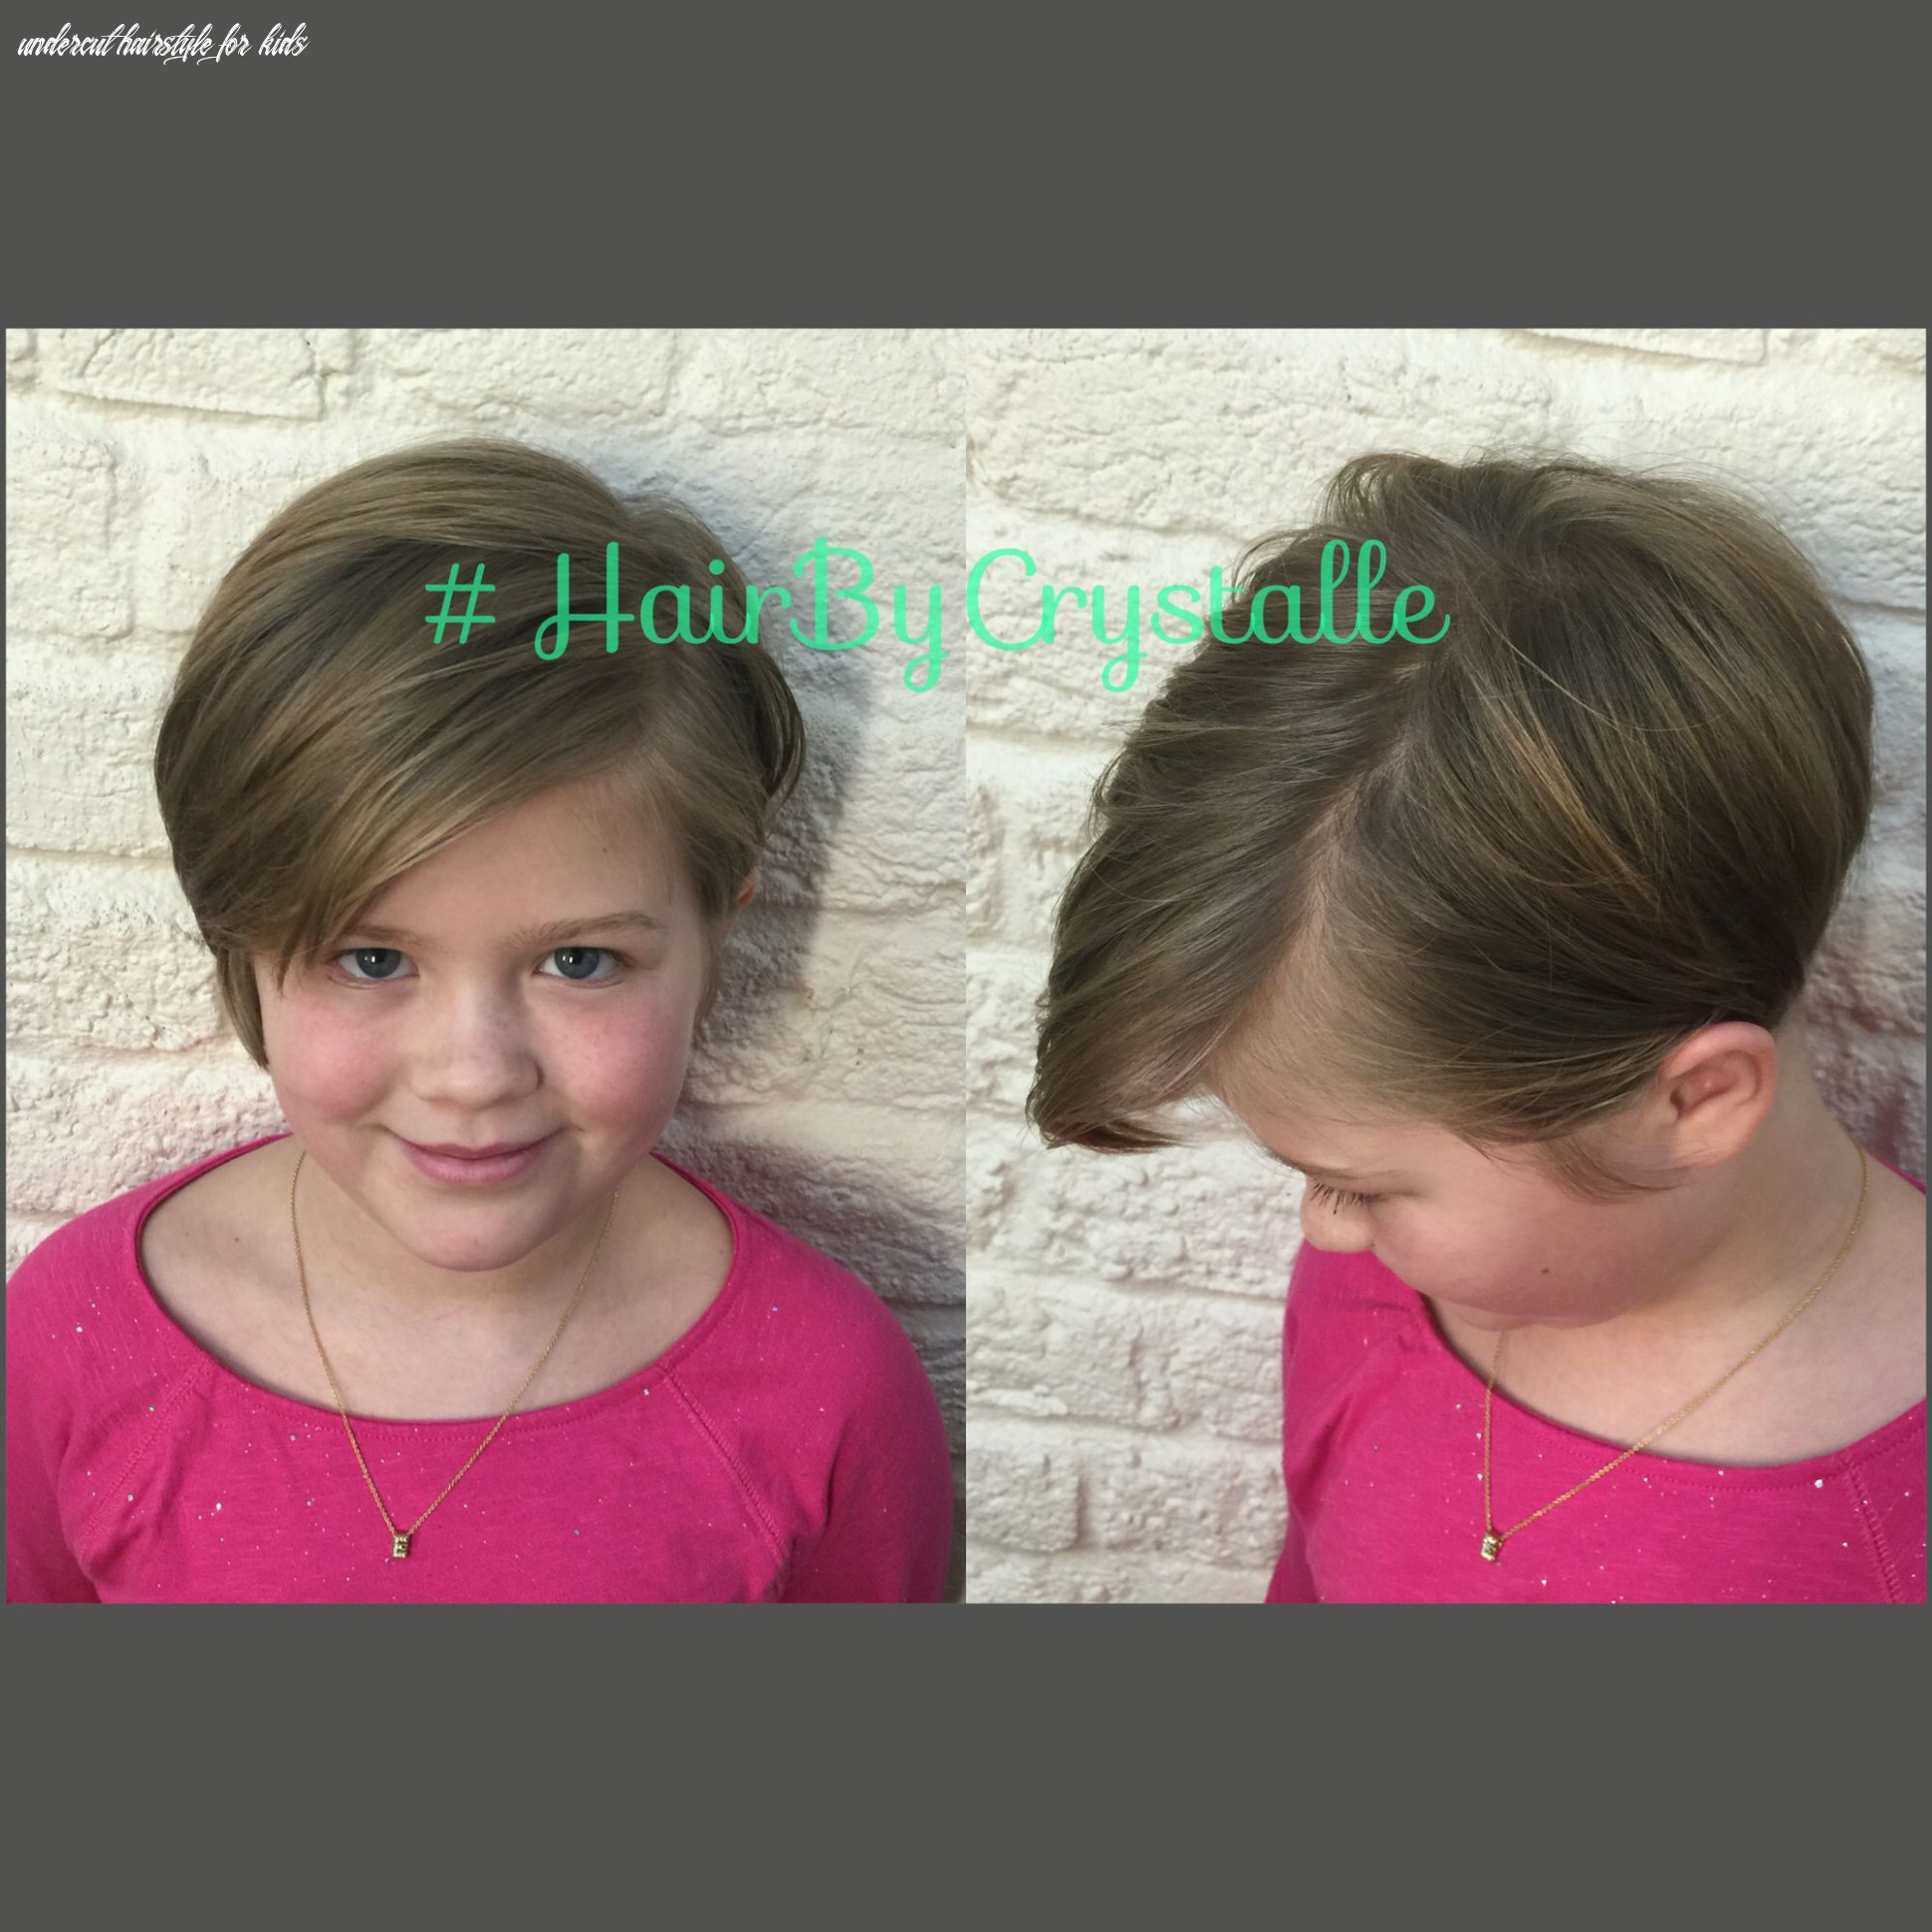 Pin on Hair by Crystalle